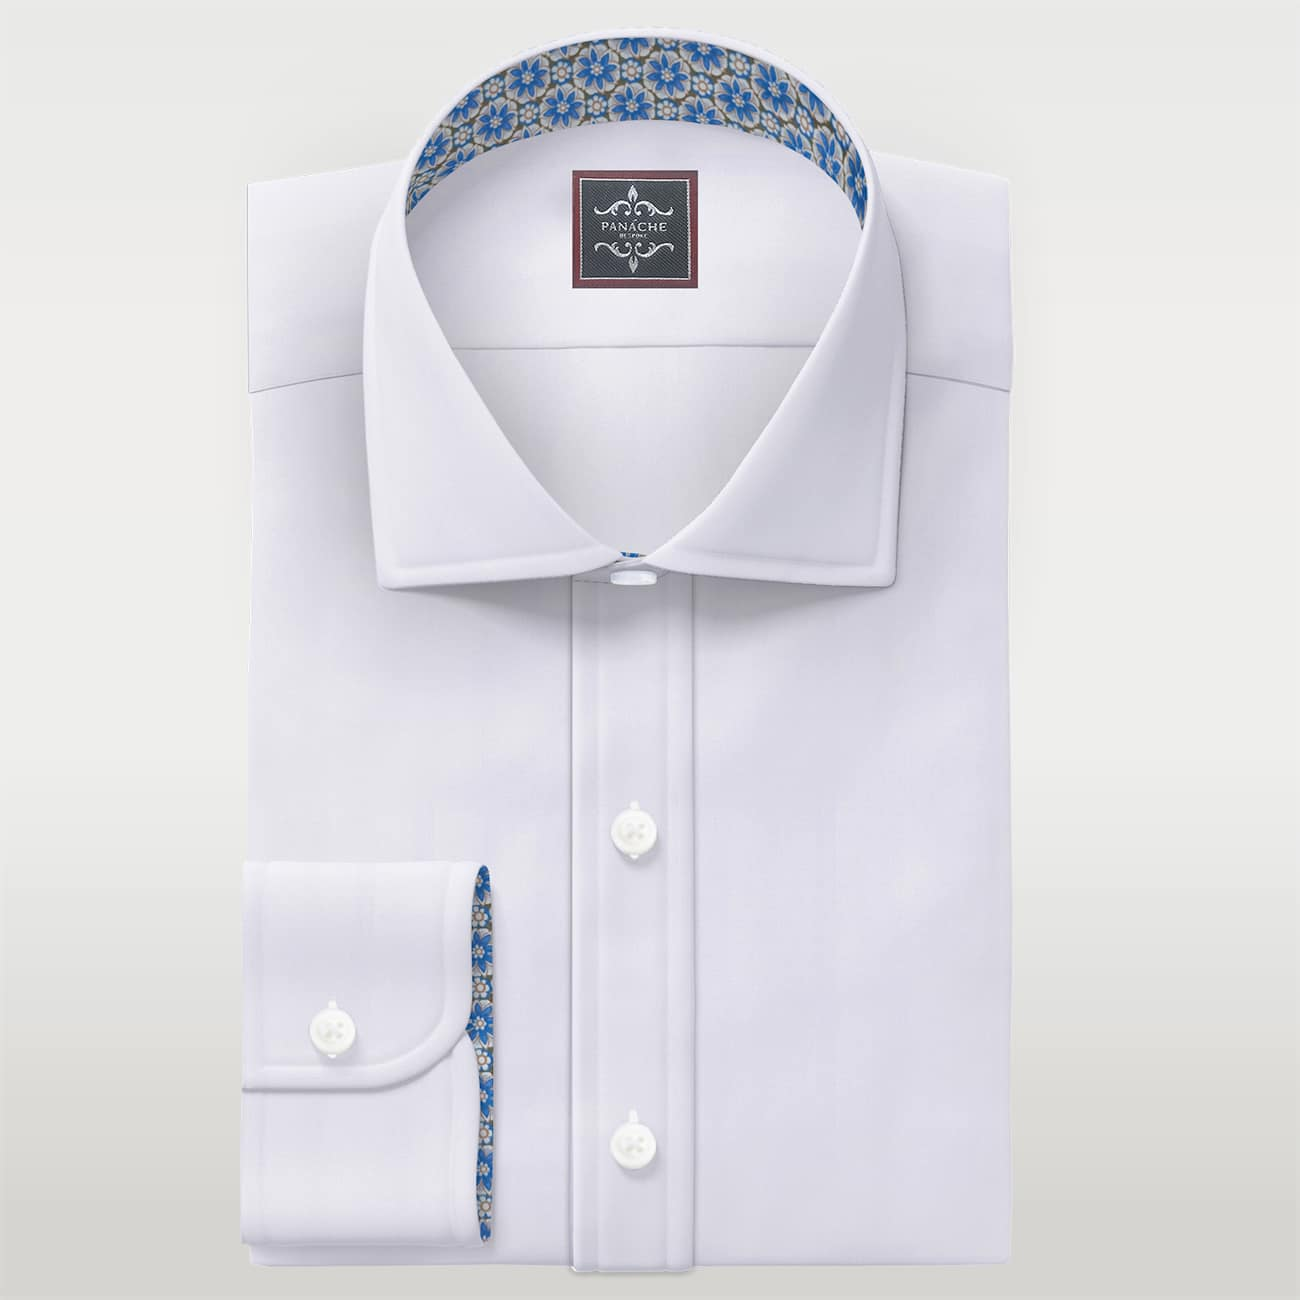 White Wrinkle Resistant Twill custom dress shirts